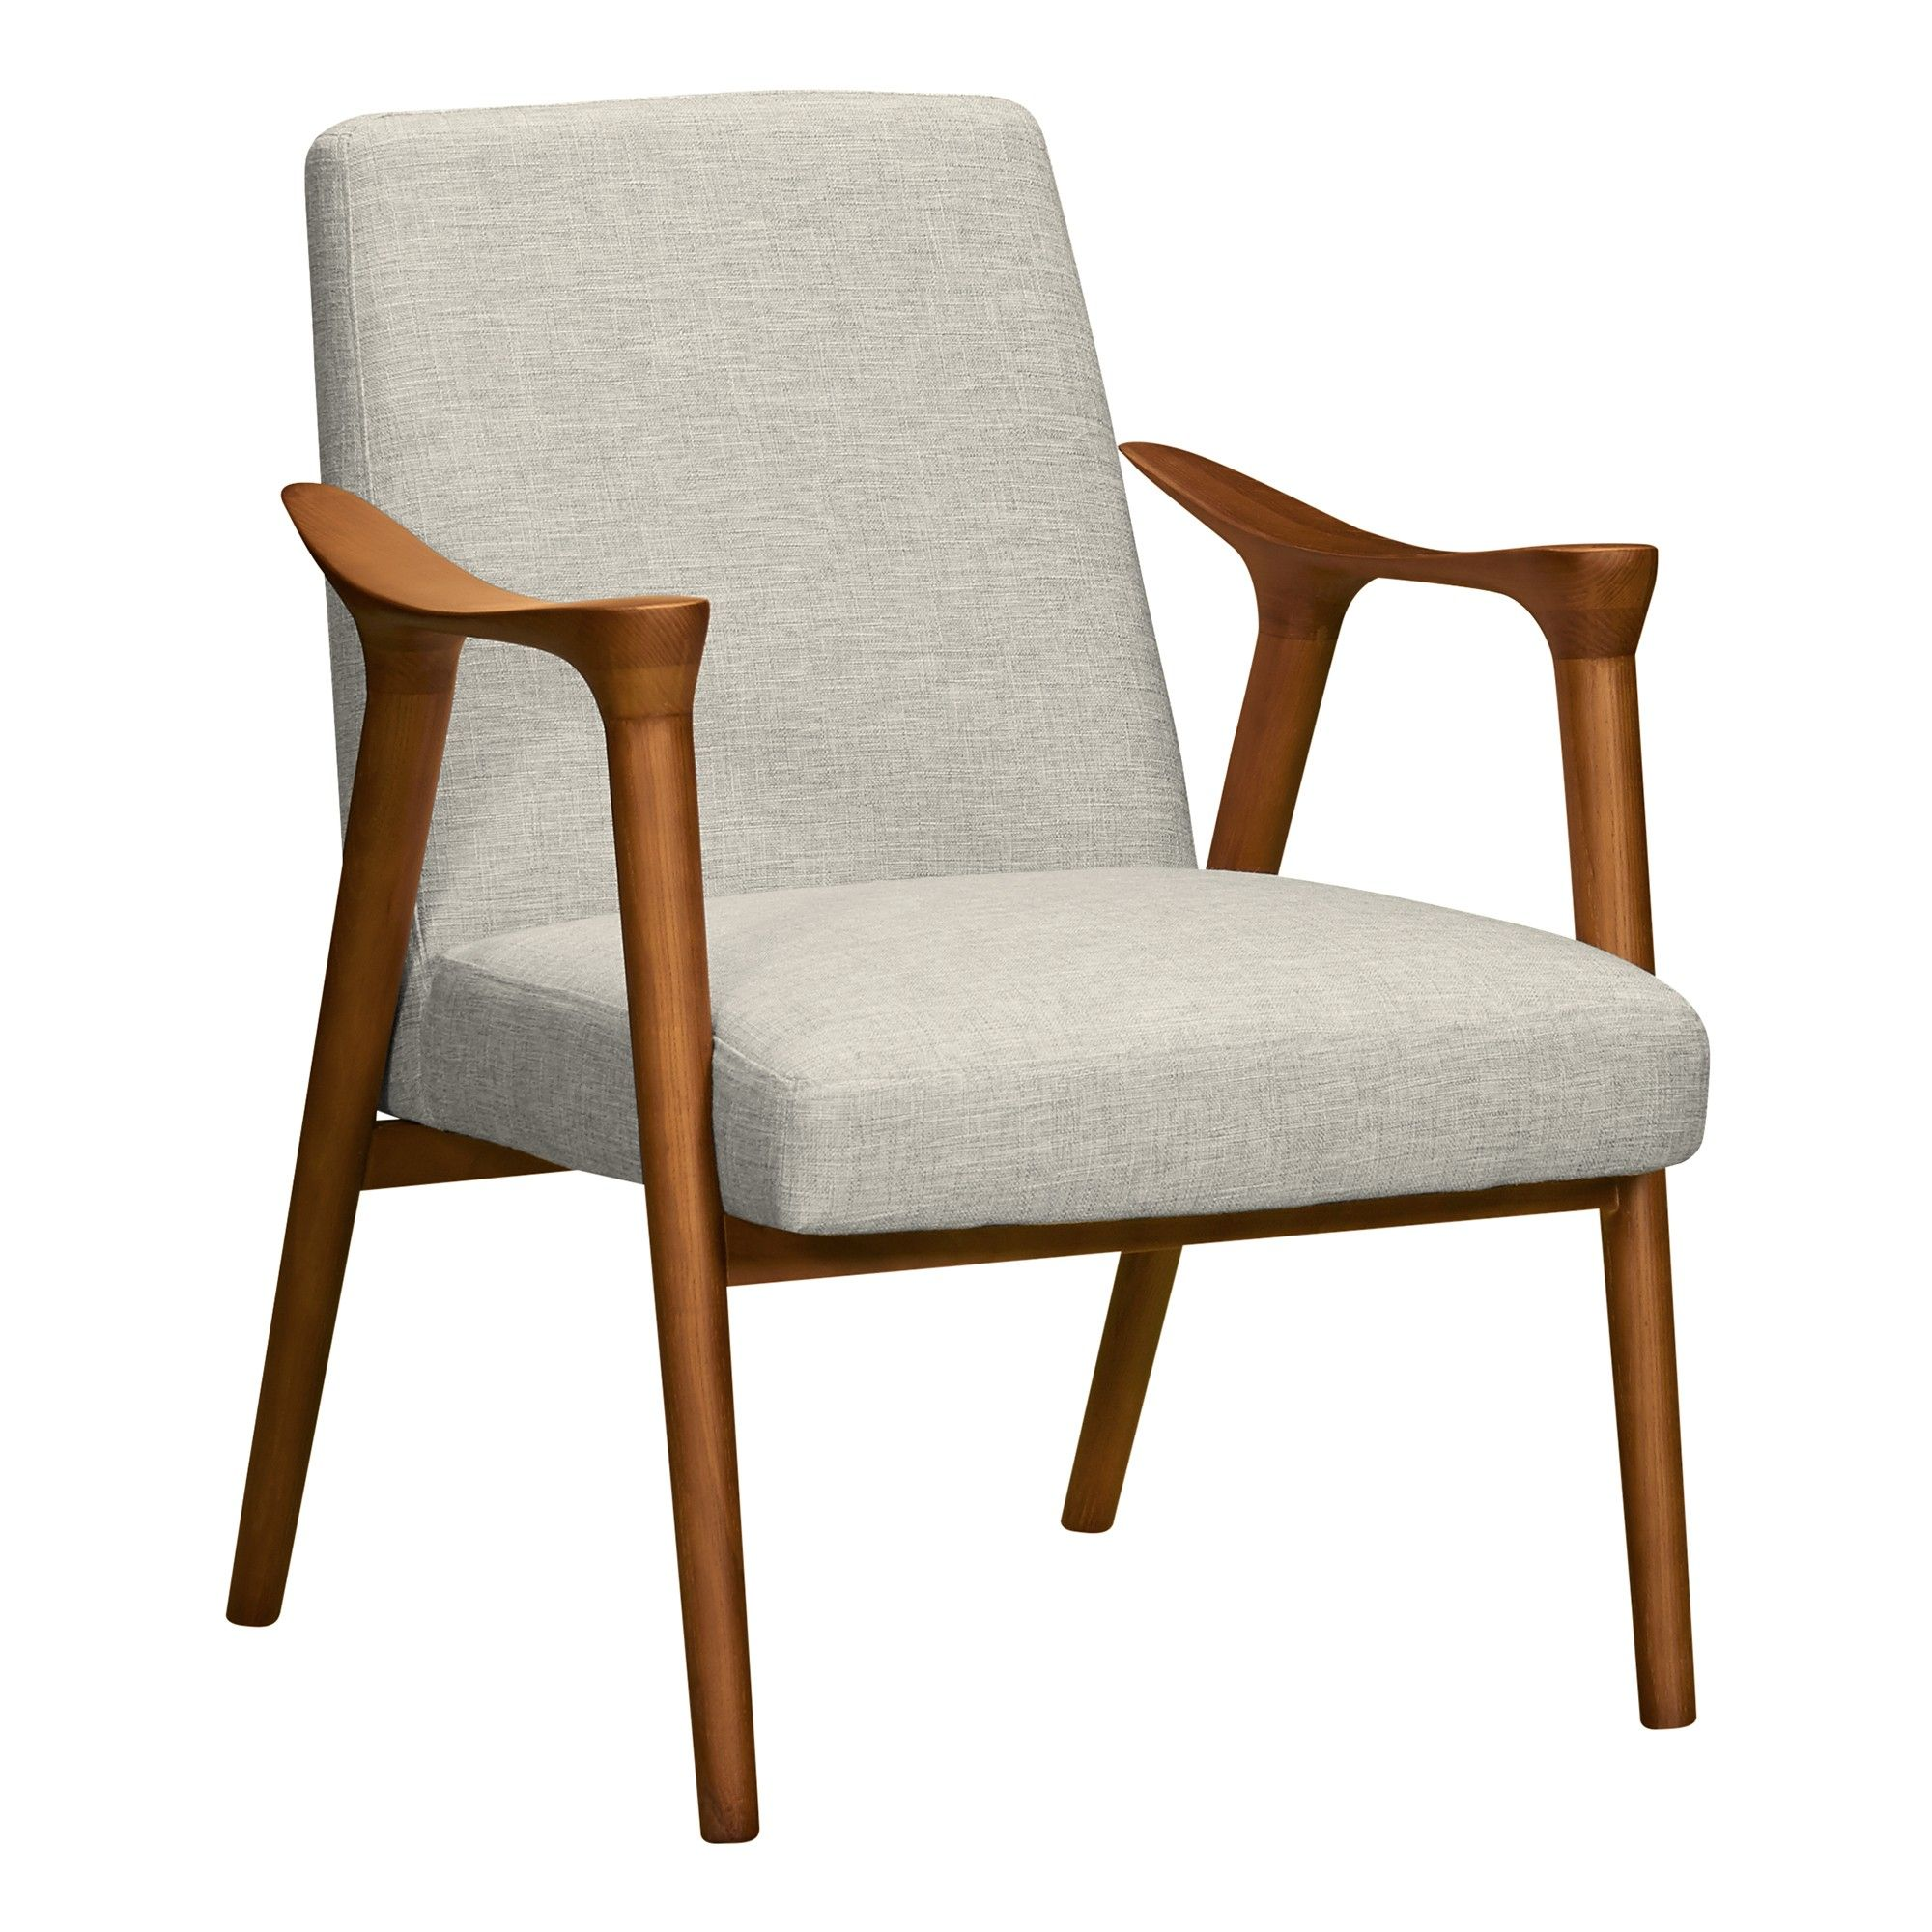 Strange Pelisium Mid Century Accent Chair Beige Modern Home Uwap Interior Chair Design Uwaporg